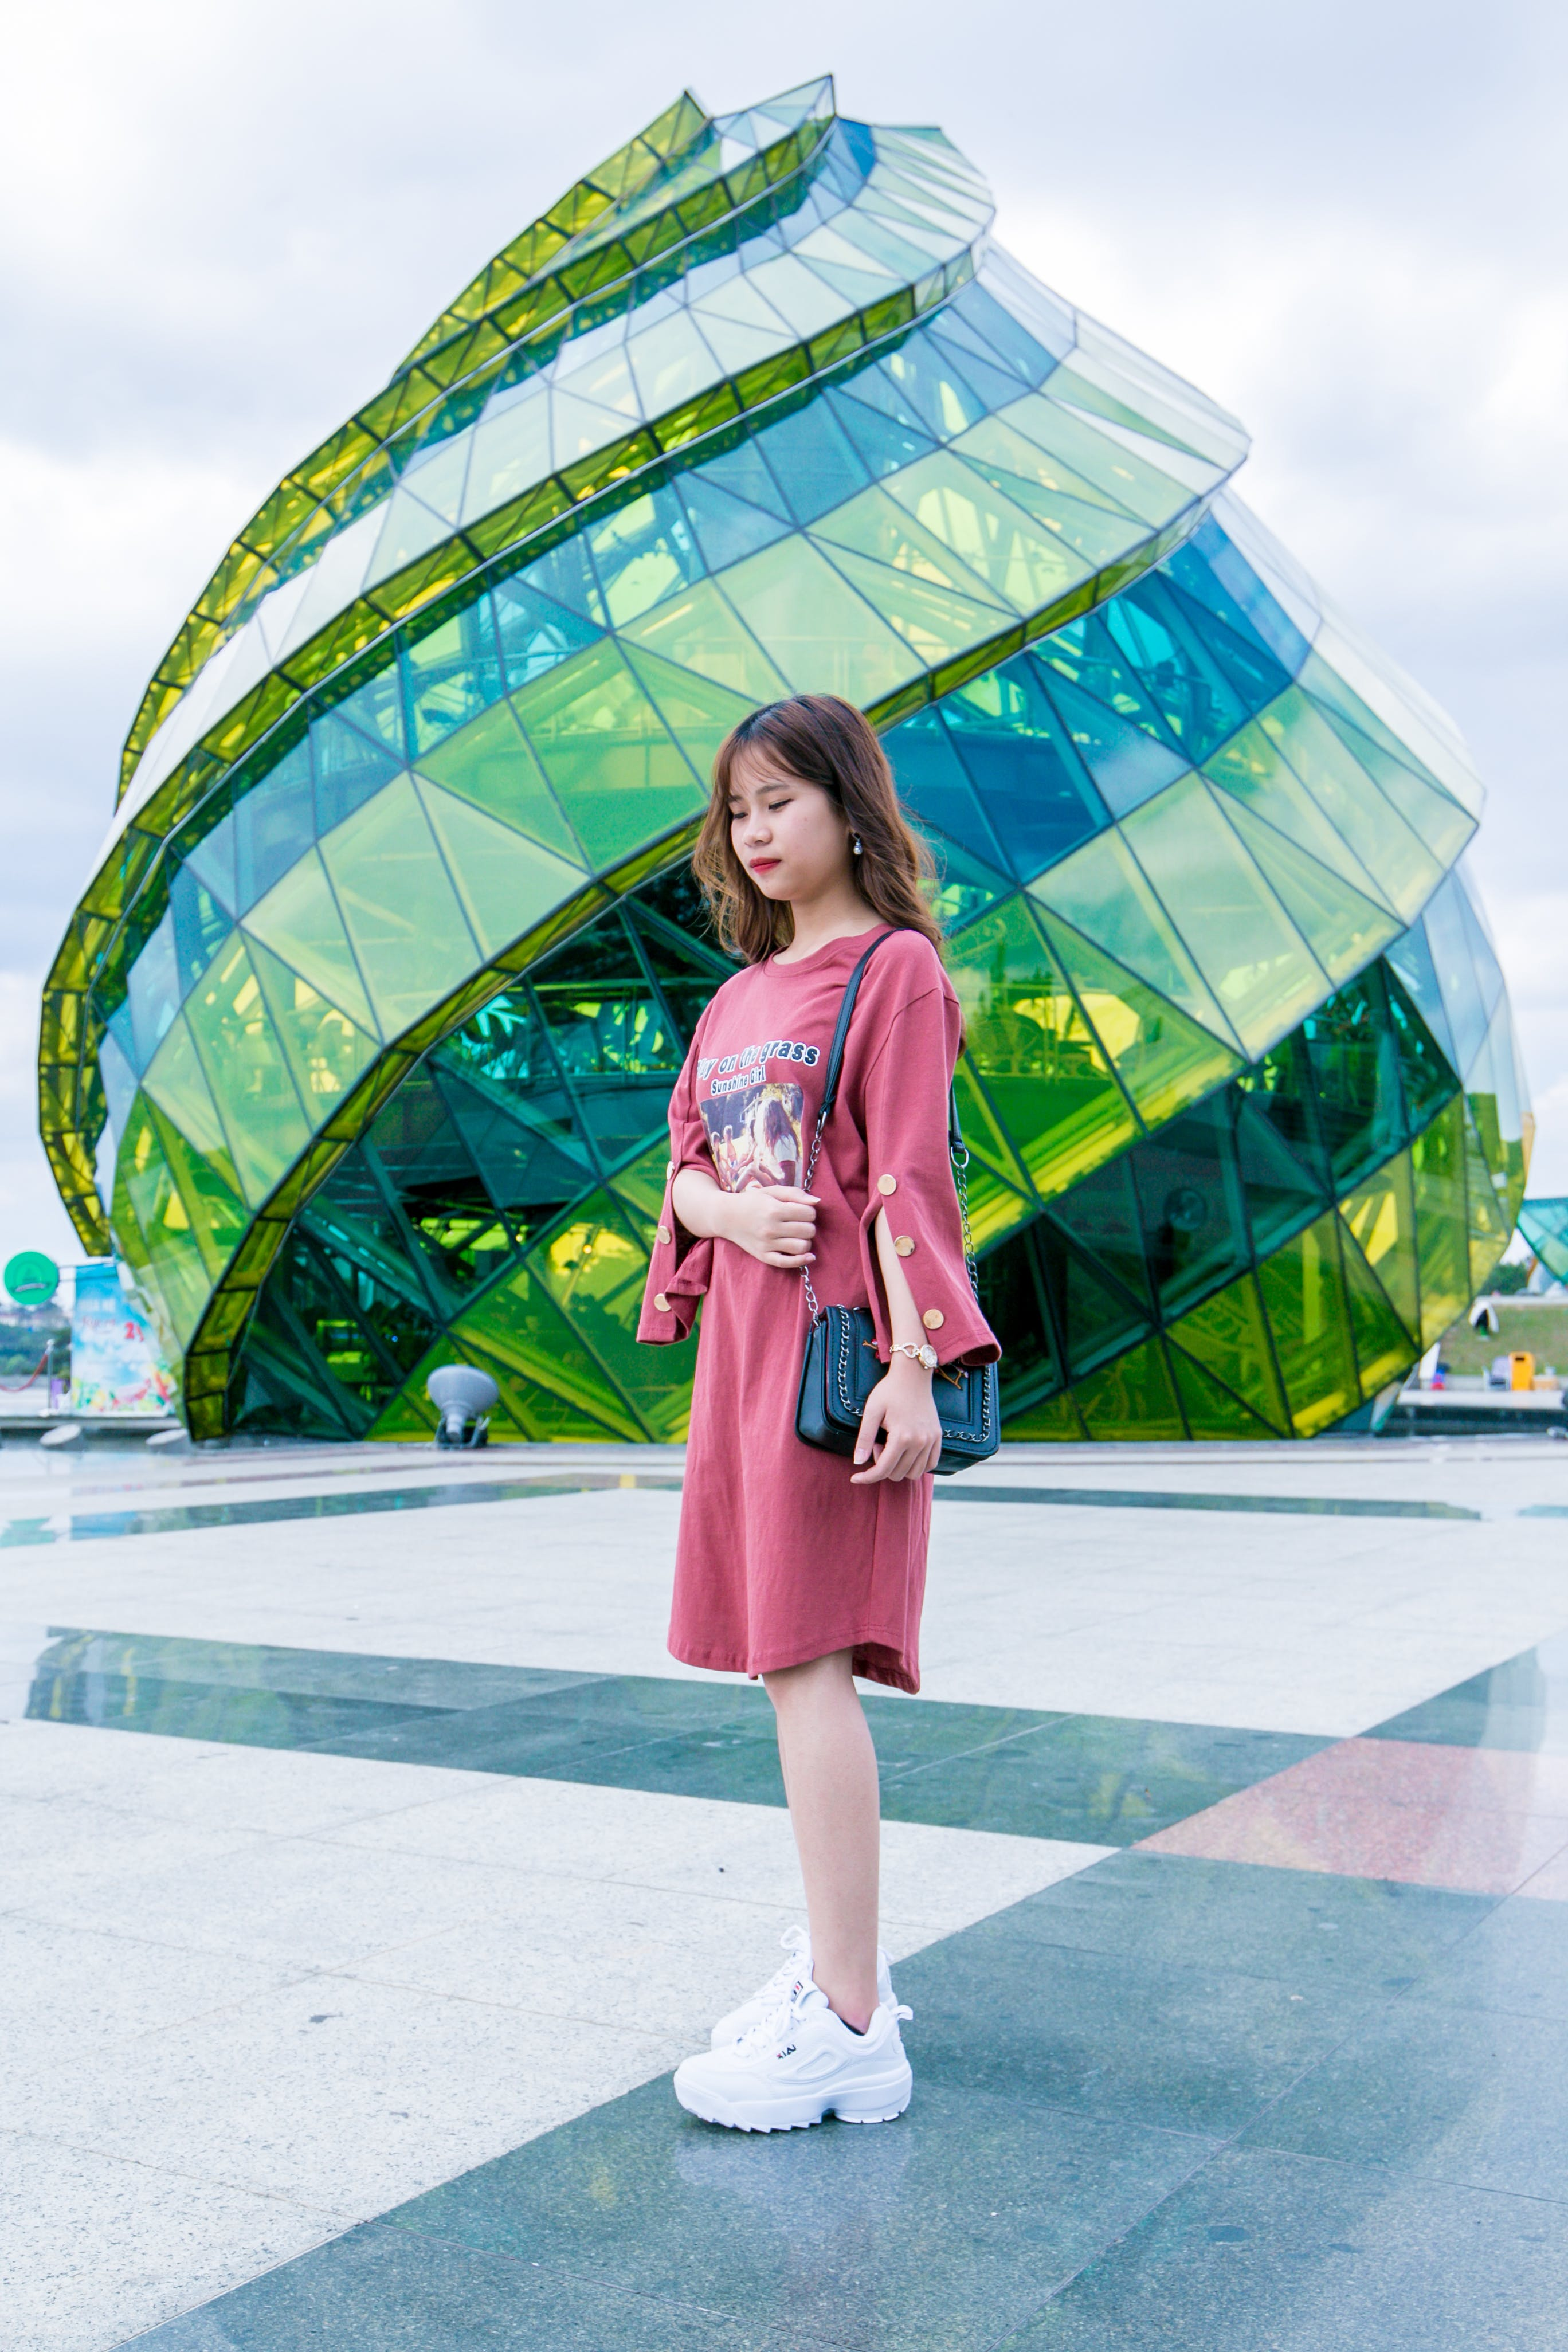 Girl Wearing Red Long-sleeved Dress and White Low-top Shoes Standing Near Green Glass Structure